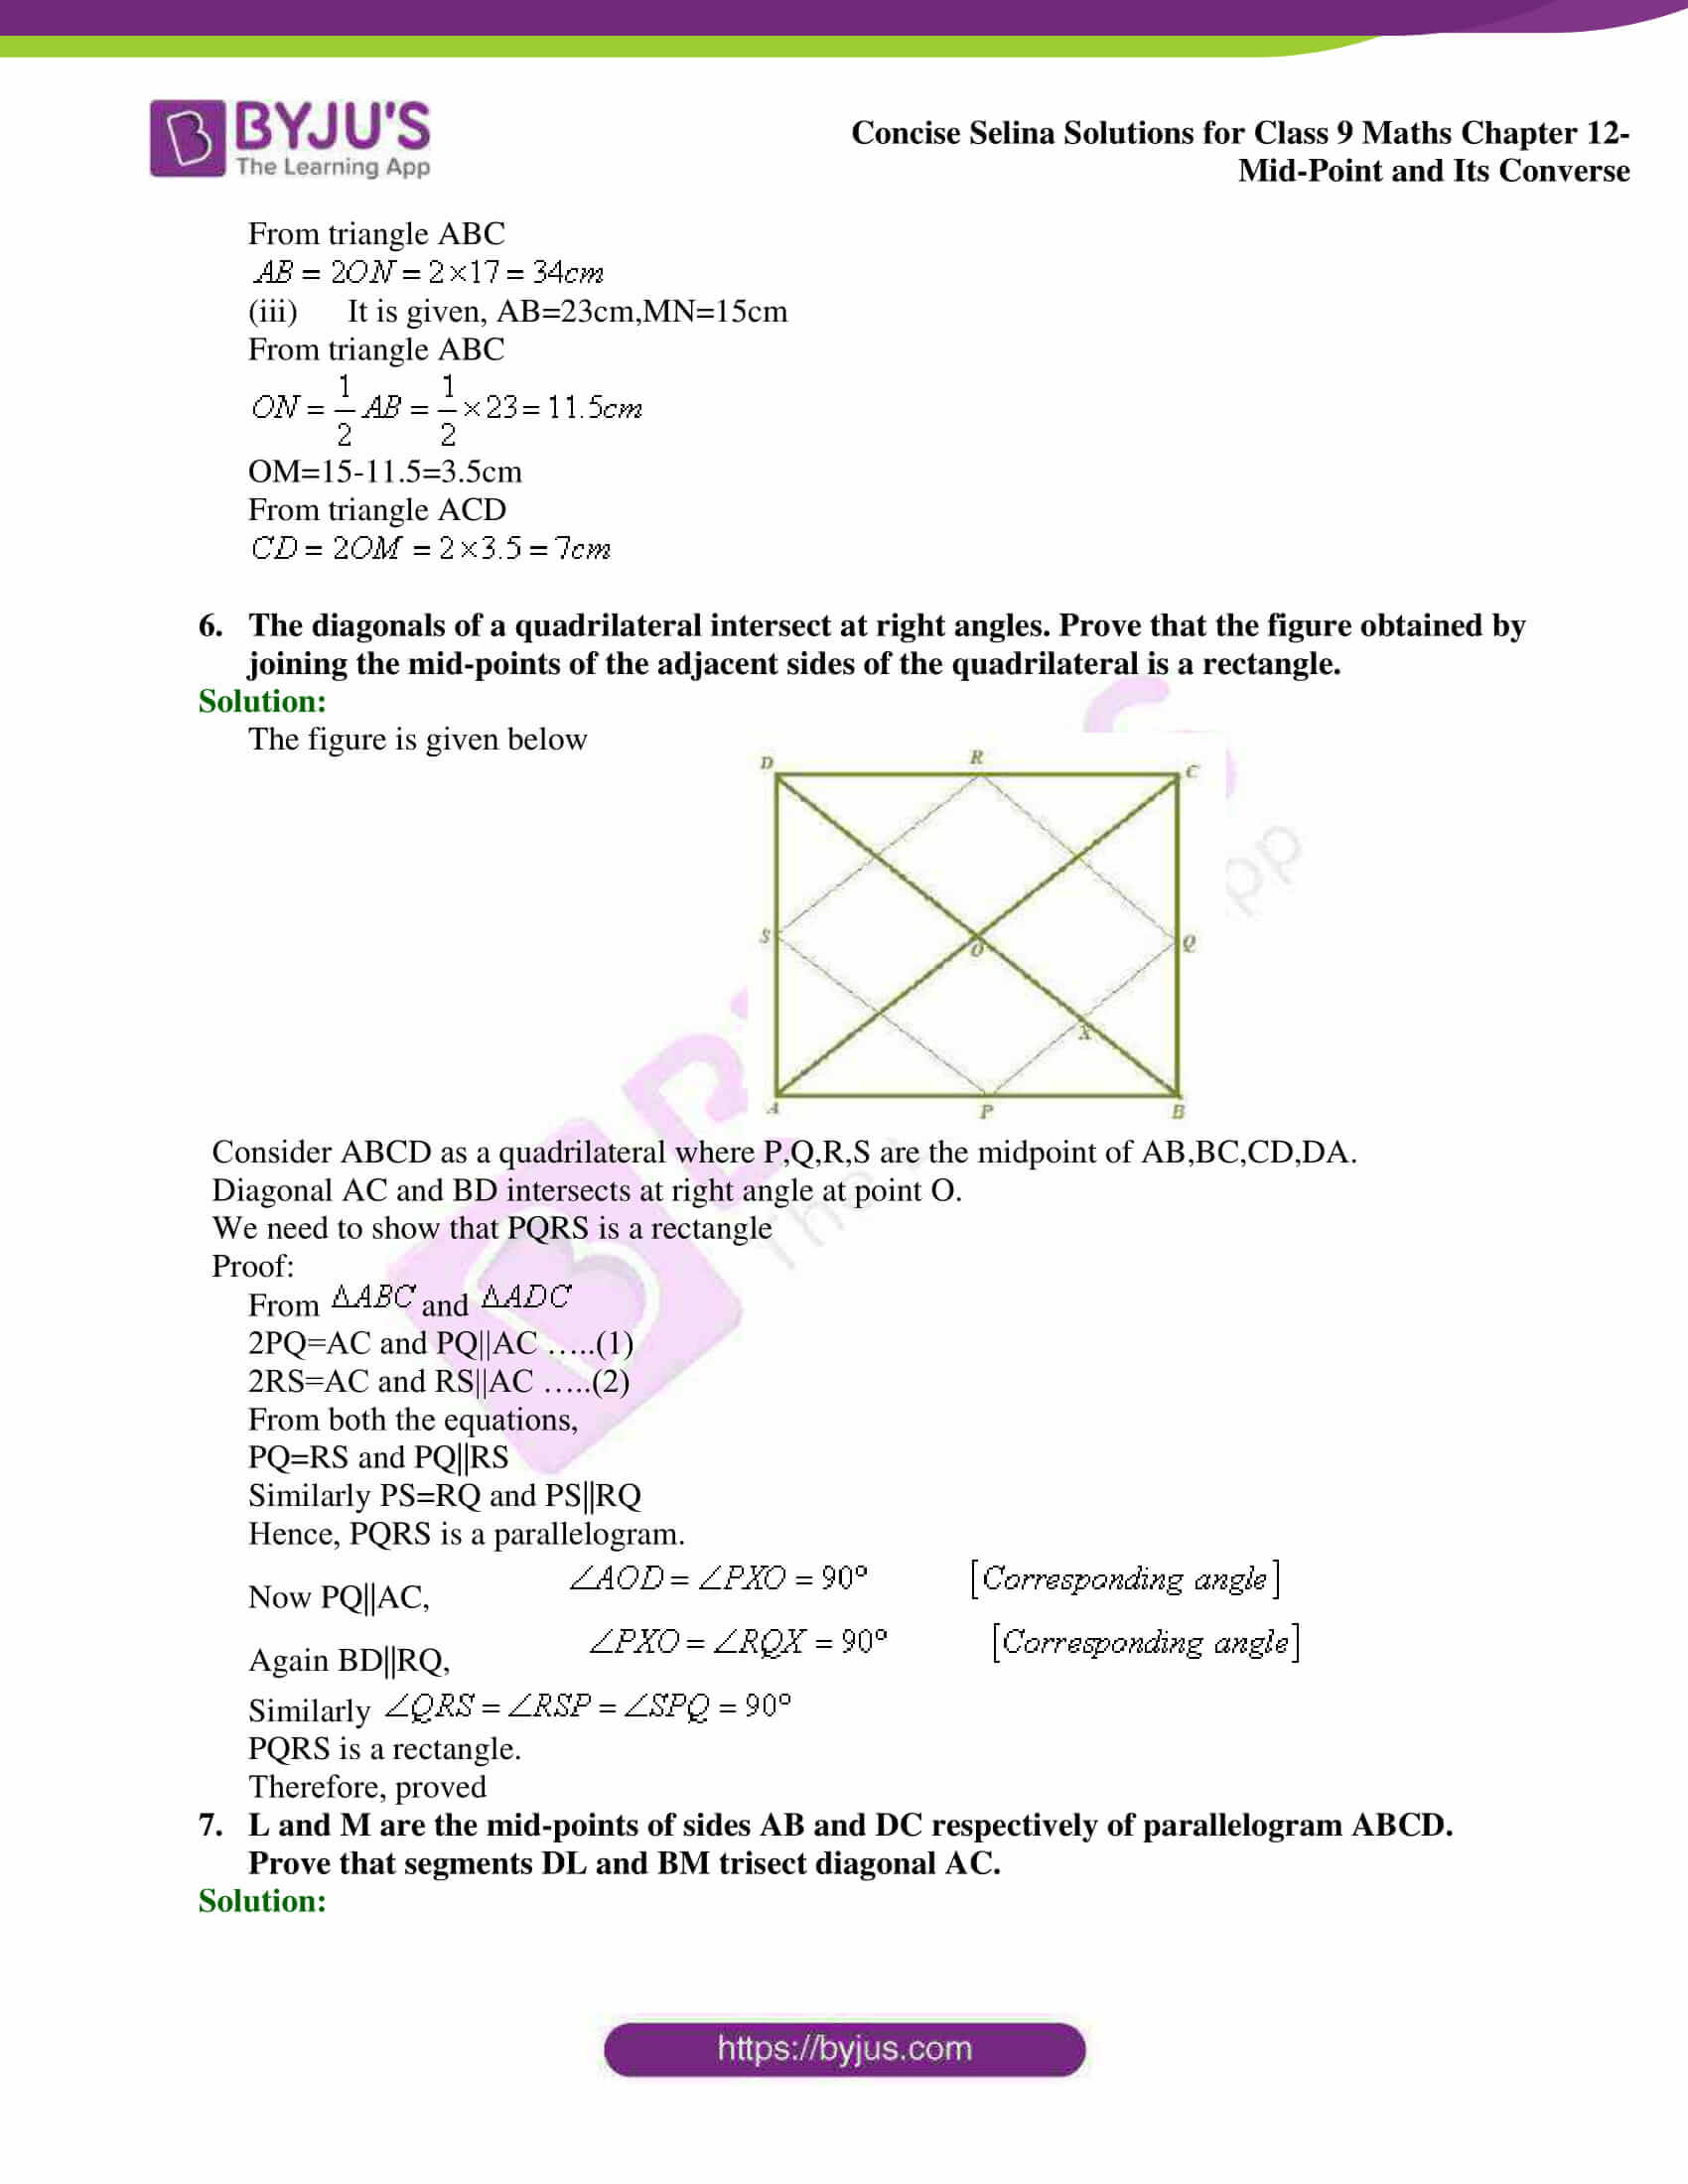 selina Solutions for Class 9 Maths Chapter 12 04